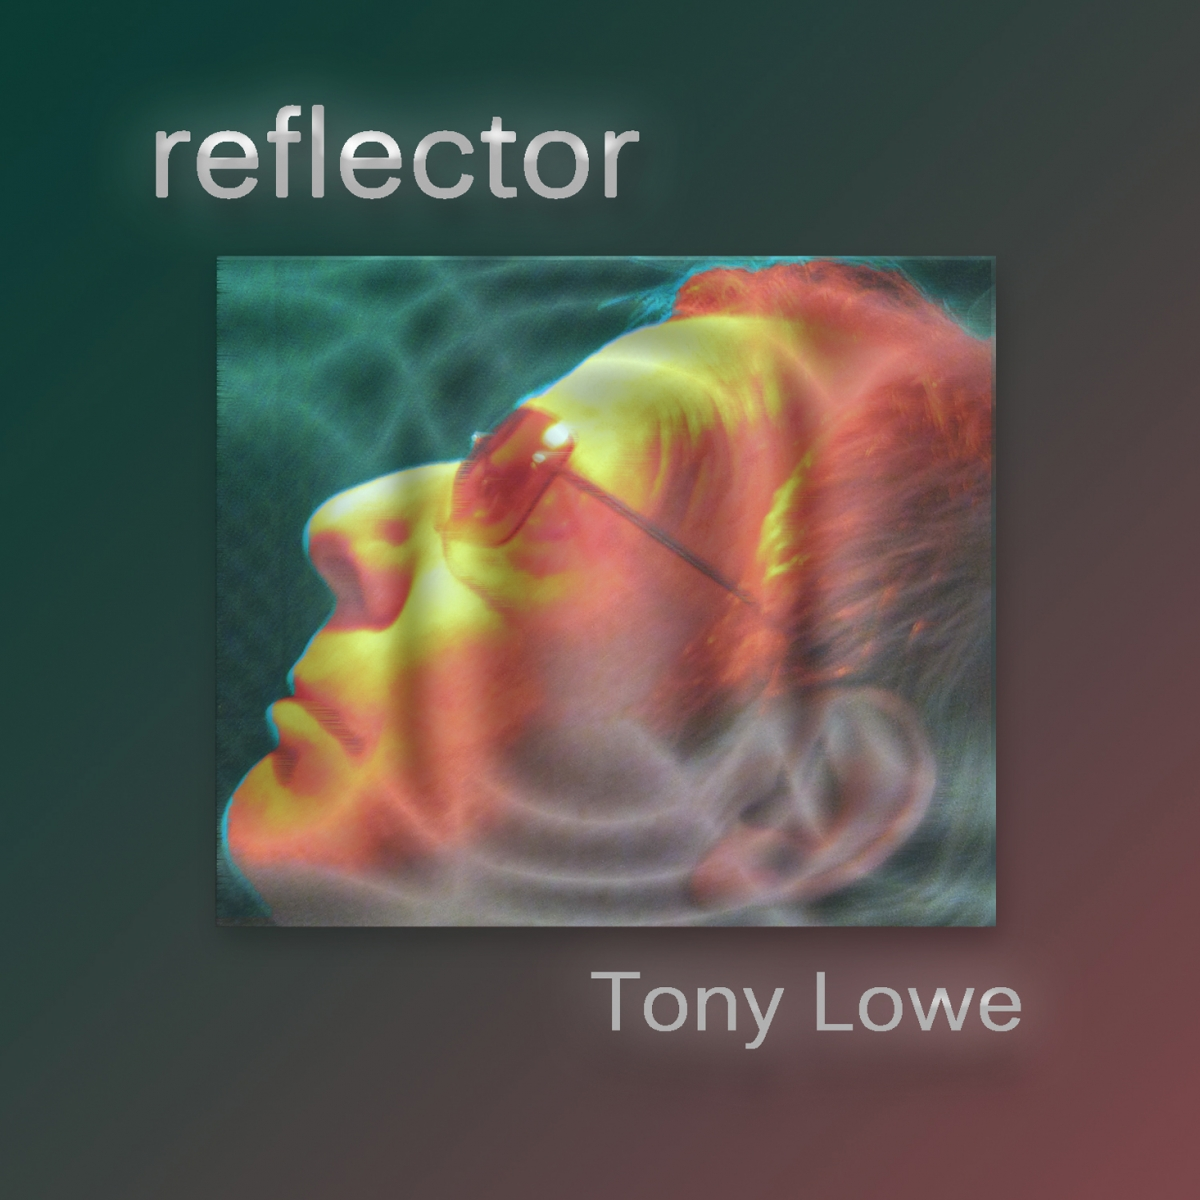 Tony Lowe - reflector